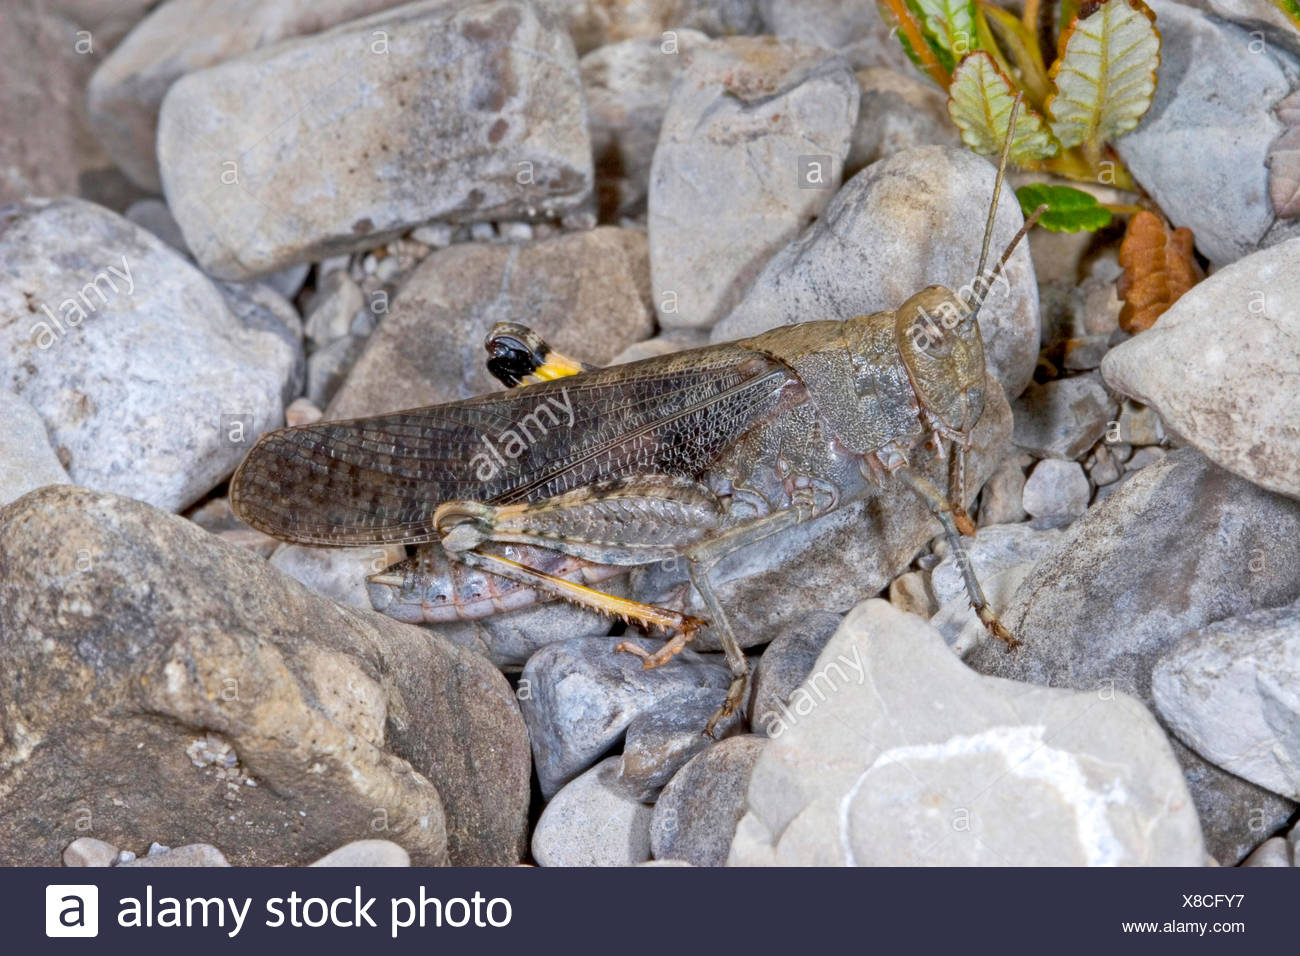 Speckled grasshopper, European Rose-winged Grasshopper  (Bryodema tuberculata, Bryodemella tuberculata), sitting on the ground, Germany - Stock Image